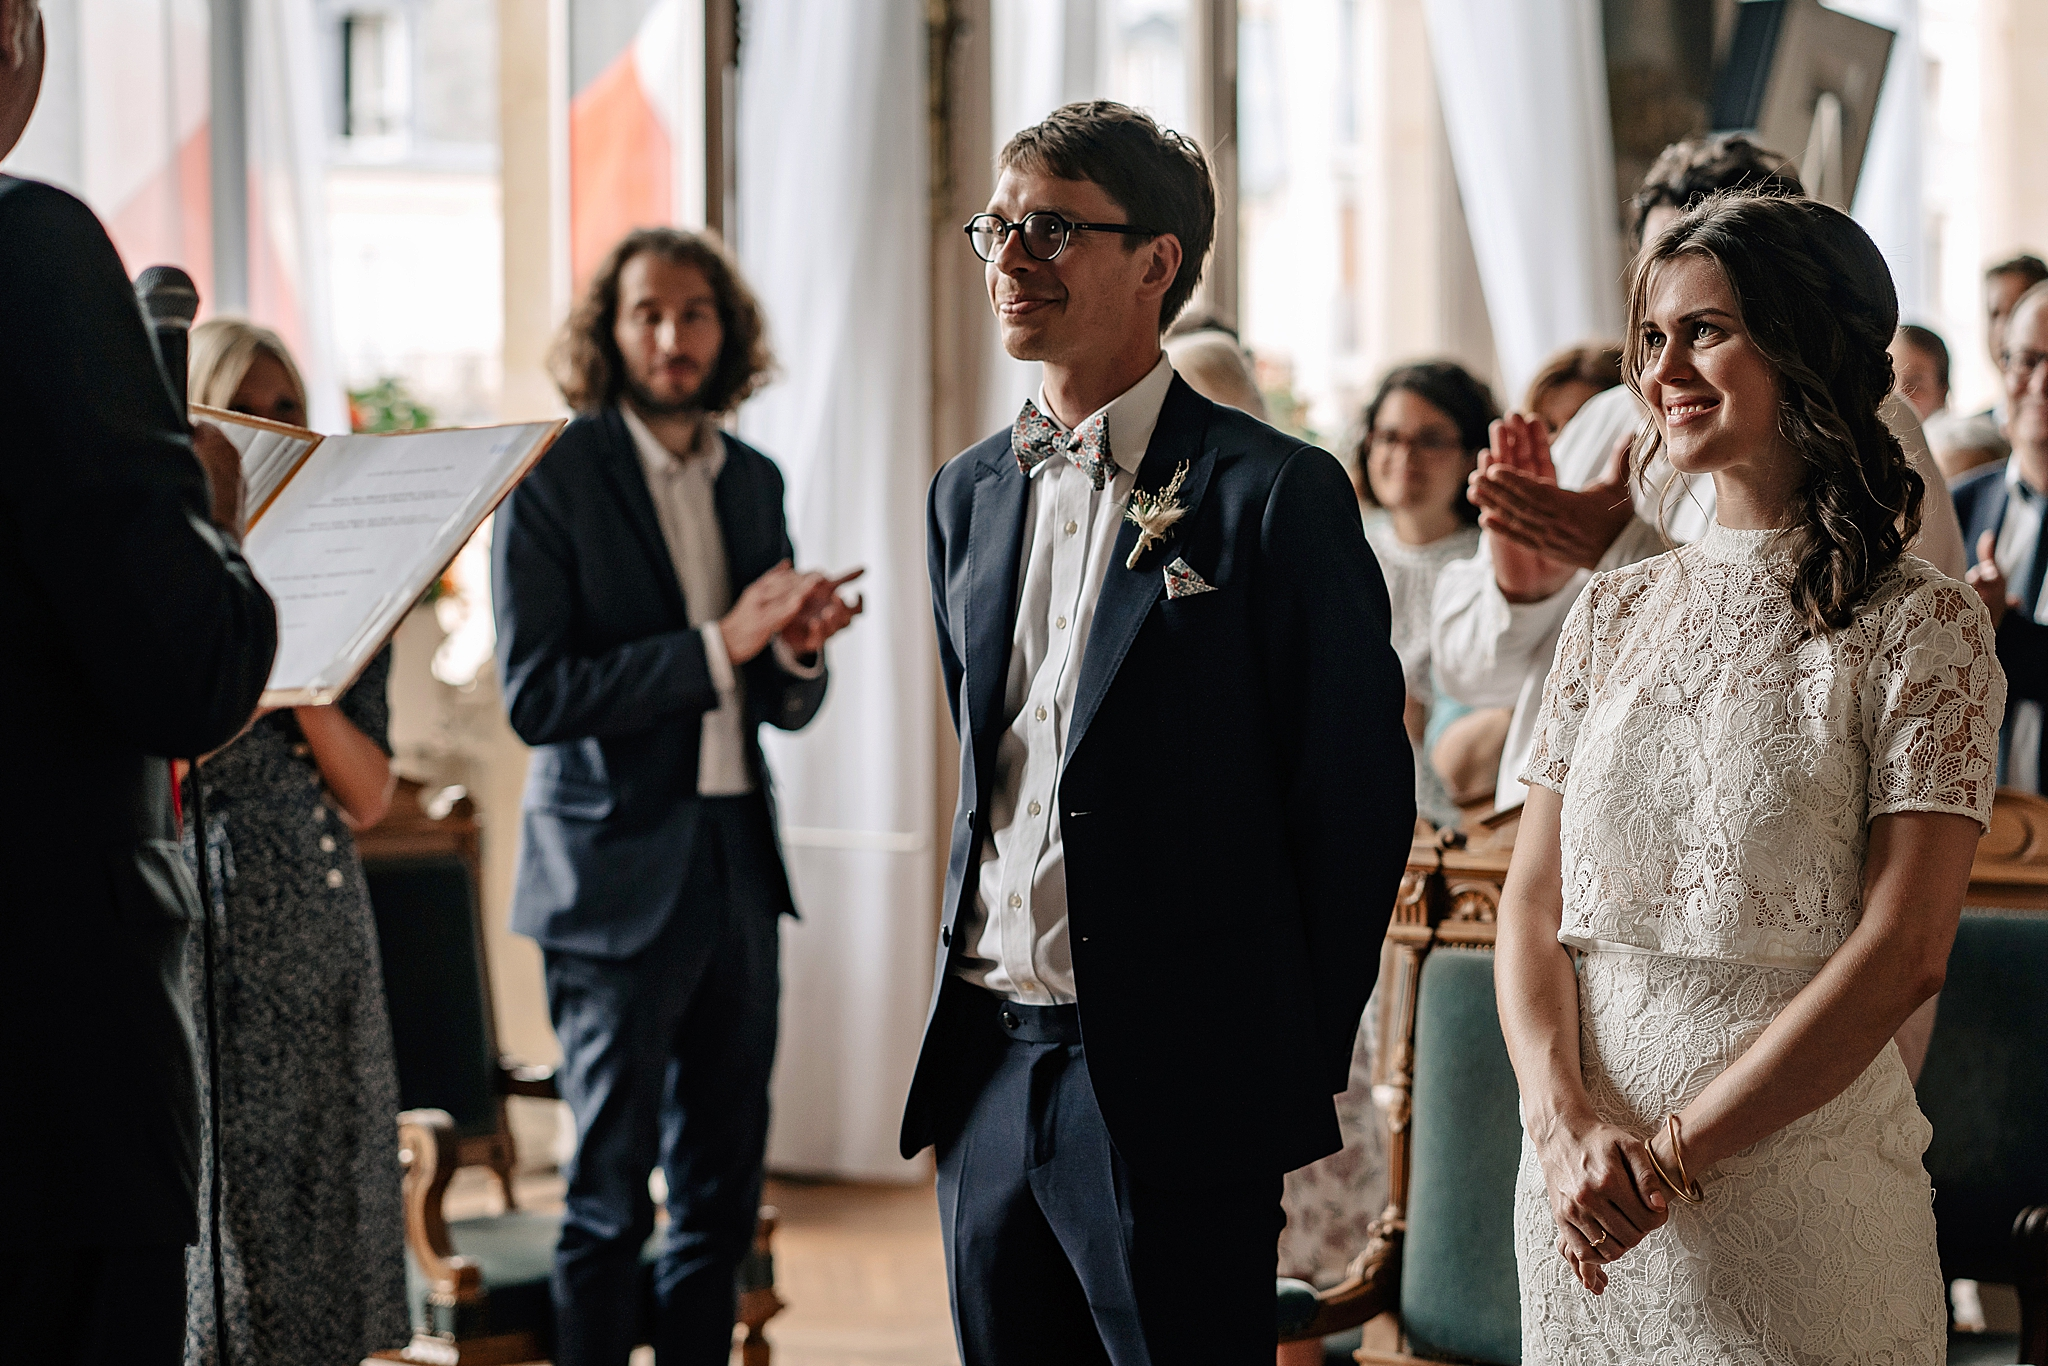 clacquesin paris wedding hochzeit marriage fotograf photographer civil ceremony mairie asnieres sur seine destination france french american german deutsch international